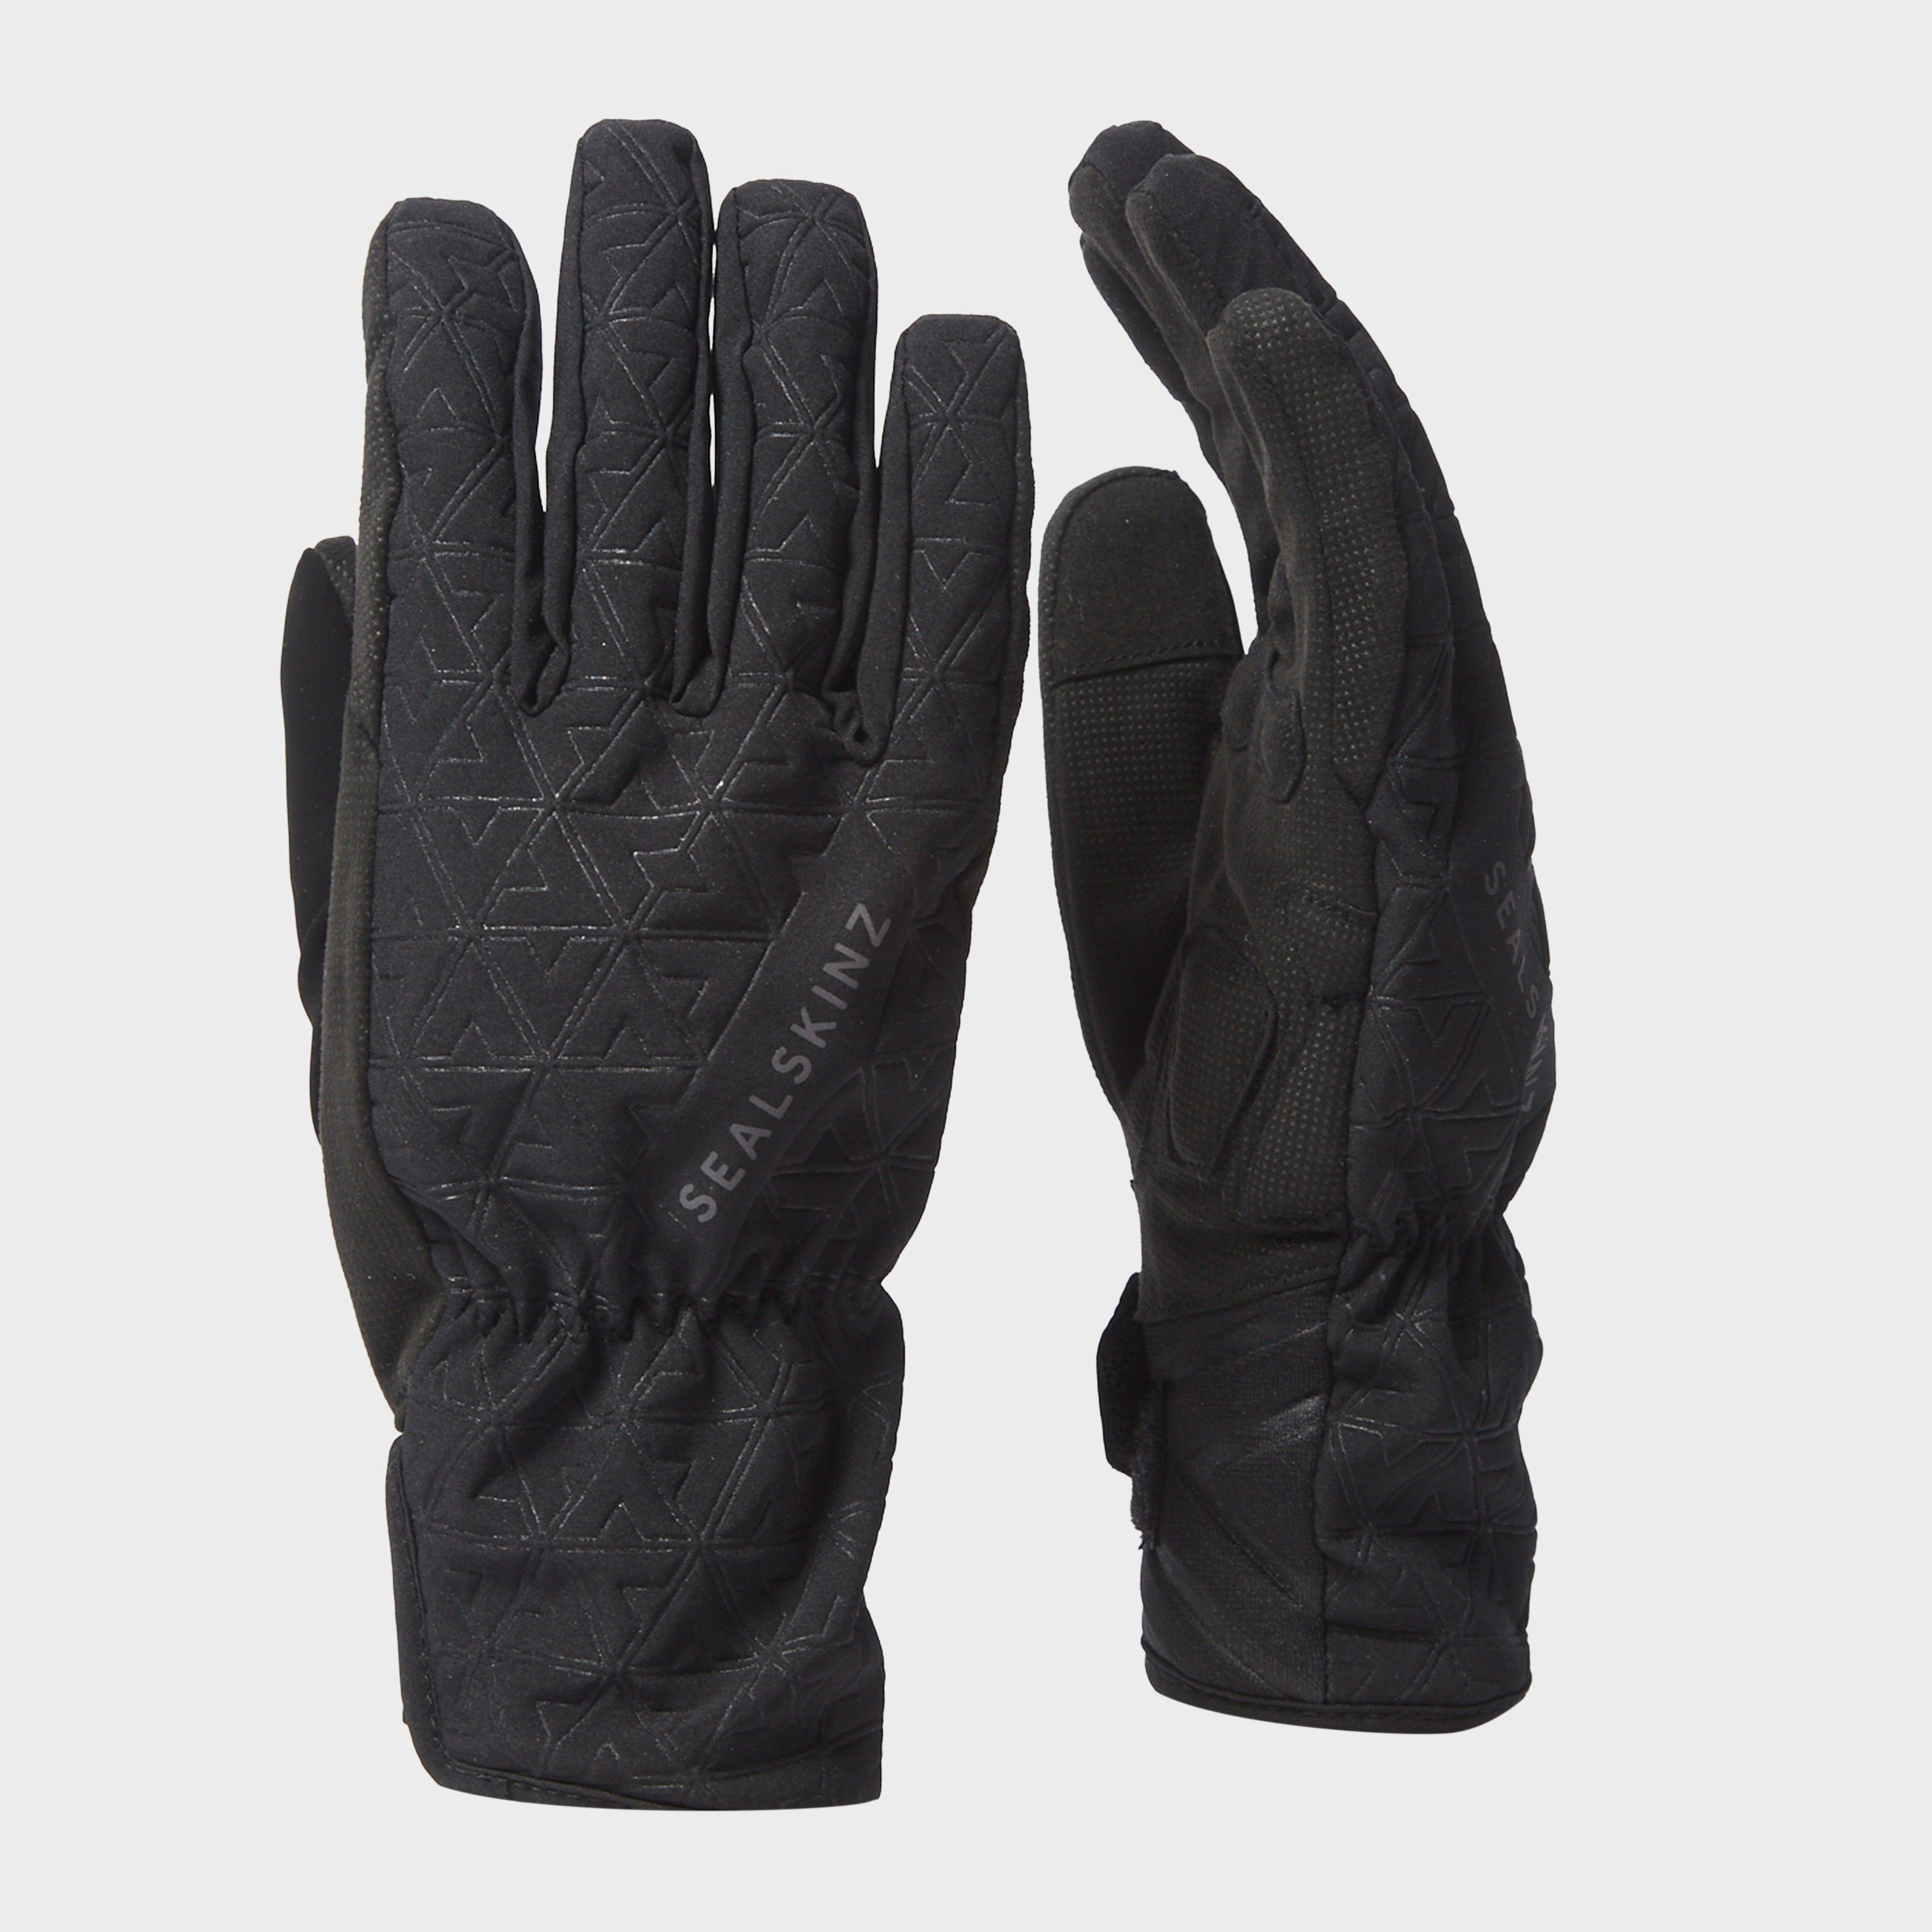 Sealskinz Women's All Weather Cycle XP Gloves, Black/Grey